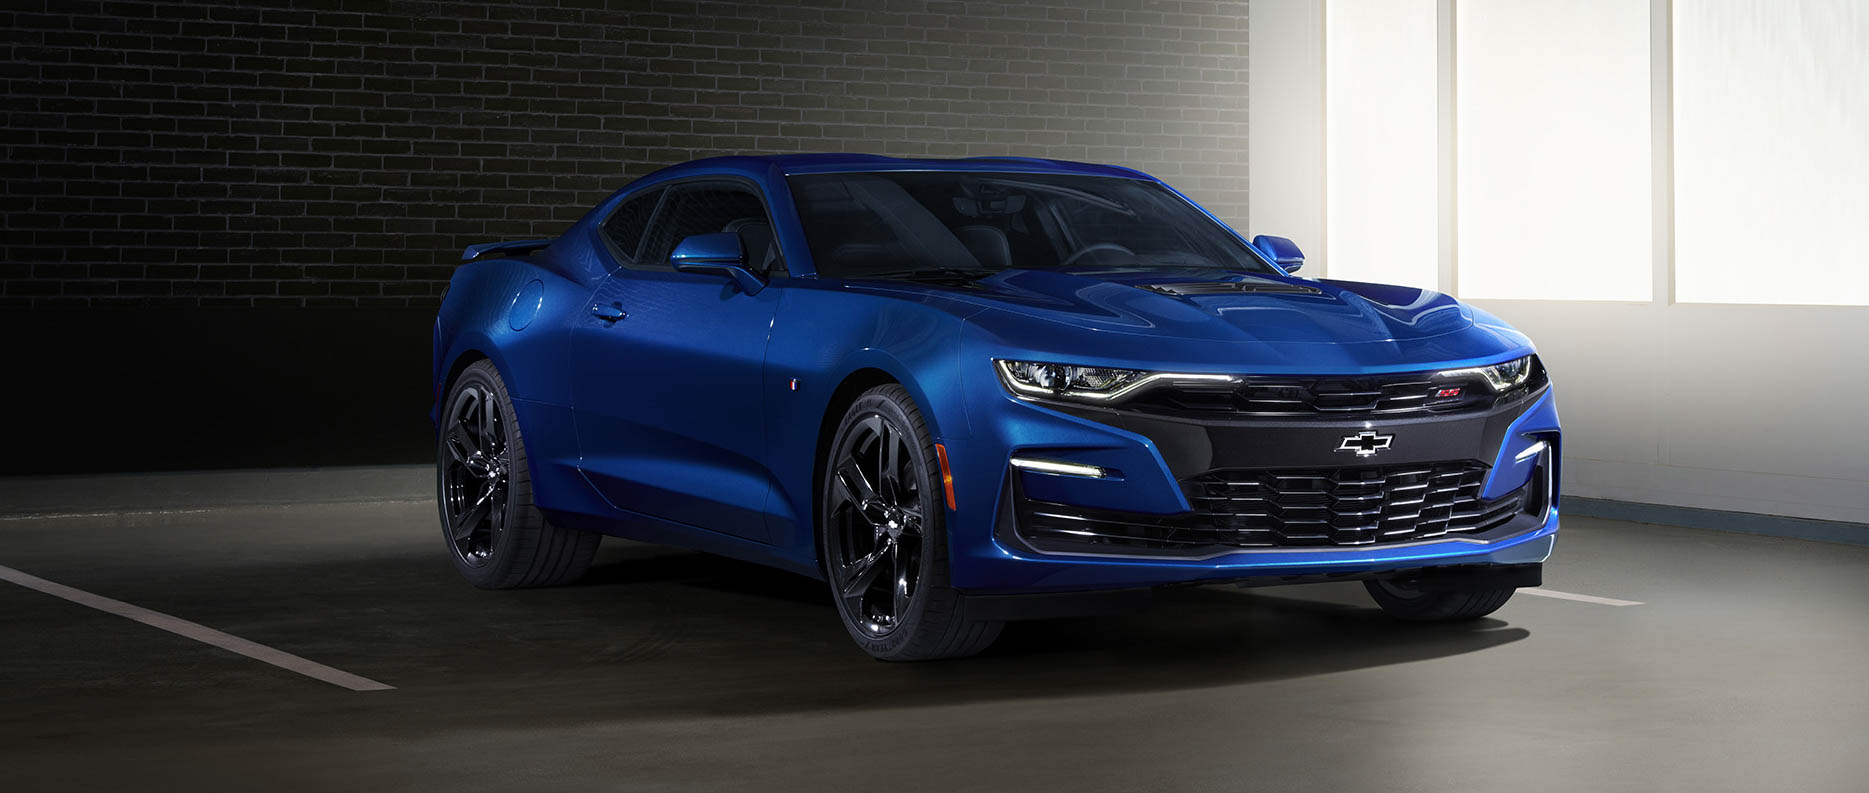 2019 Chevrolet Camaro SS front 3/4